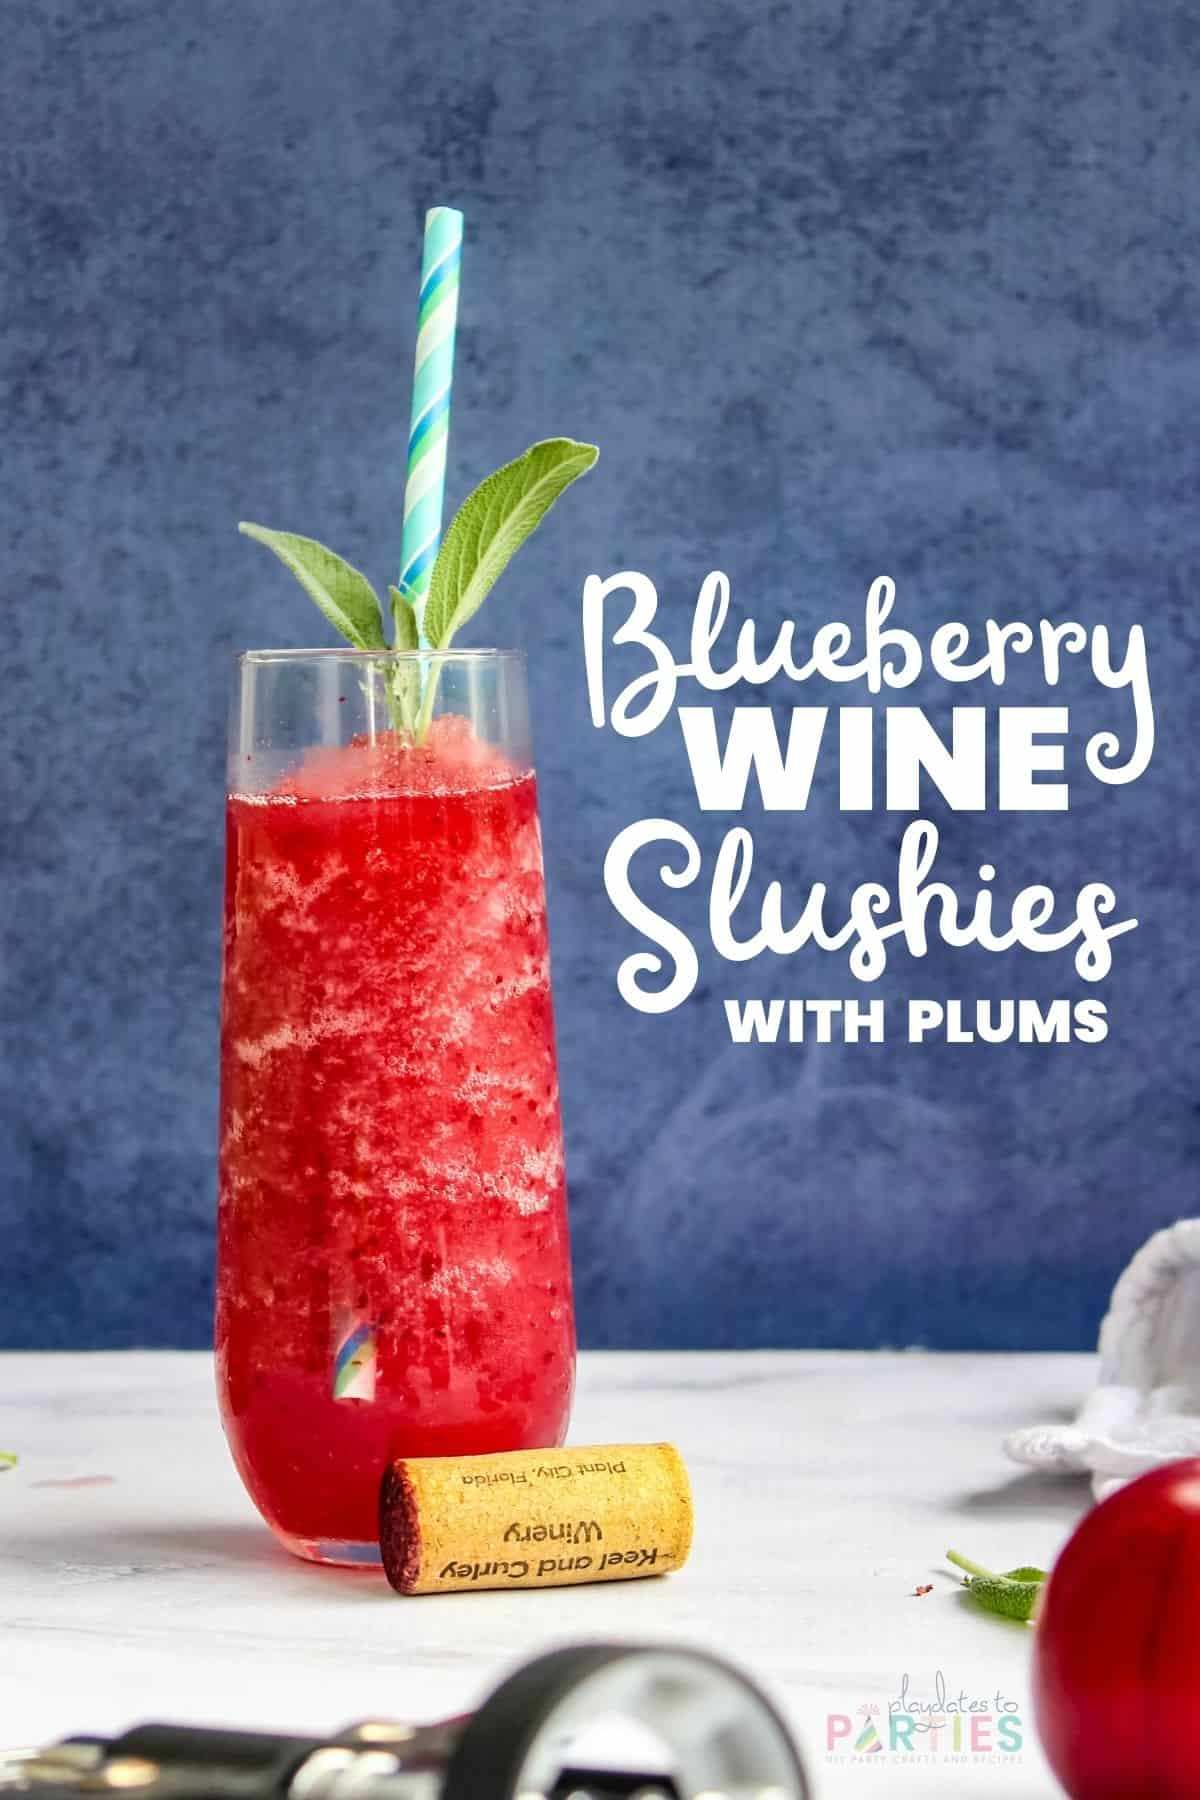 Colorful slushie in a stemless champagne flute on a marble surface with text overlay blueberry wine slushies with plums